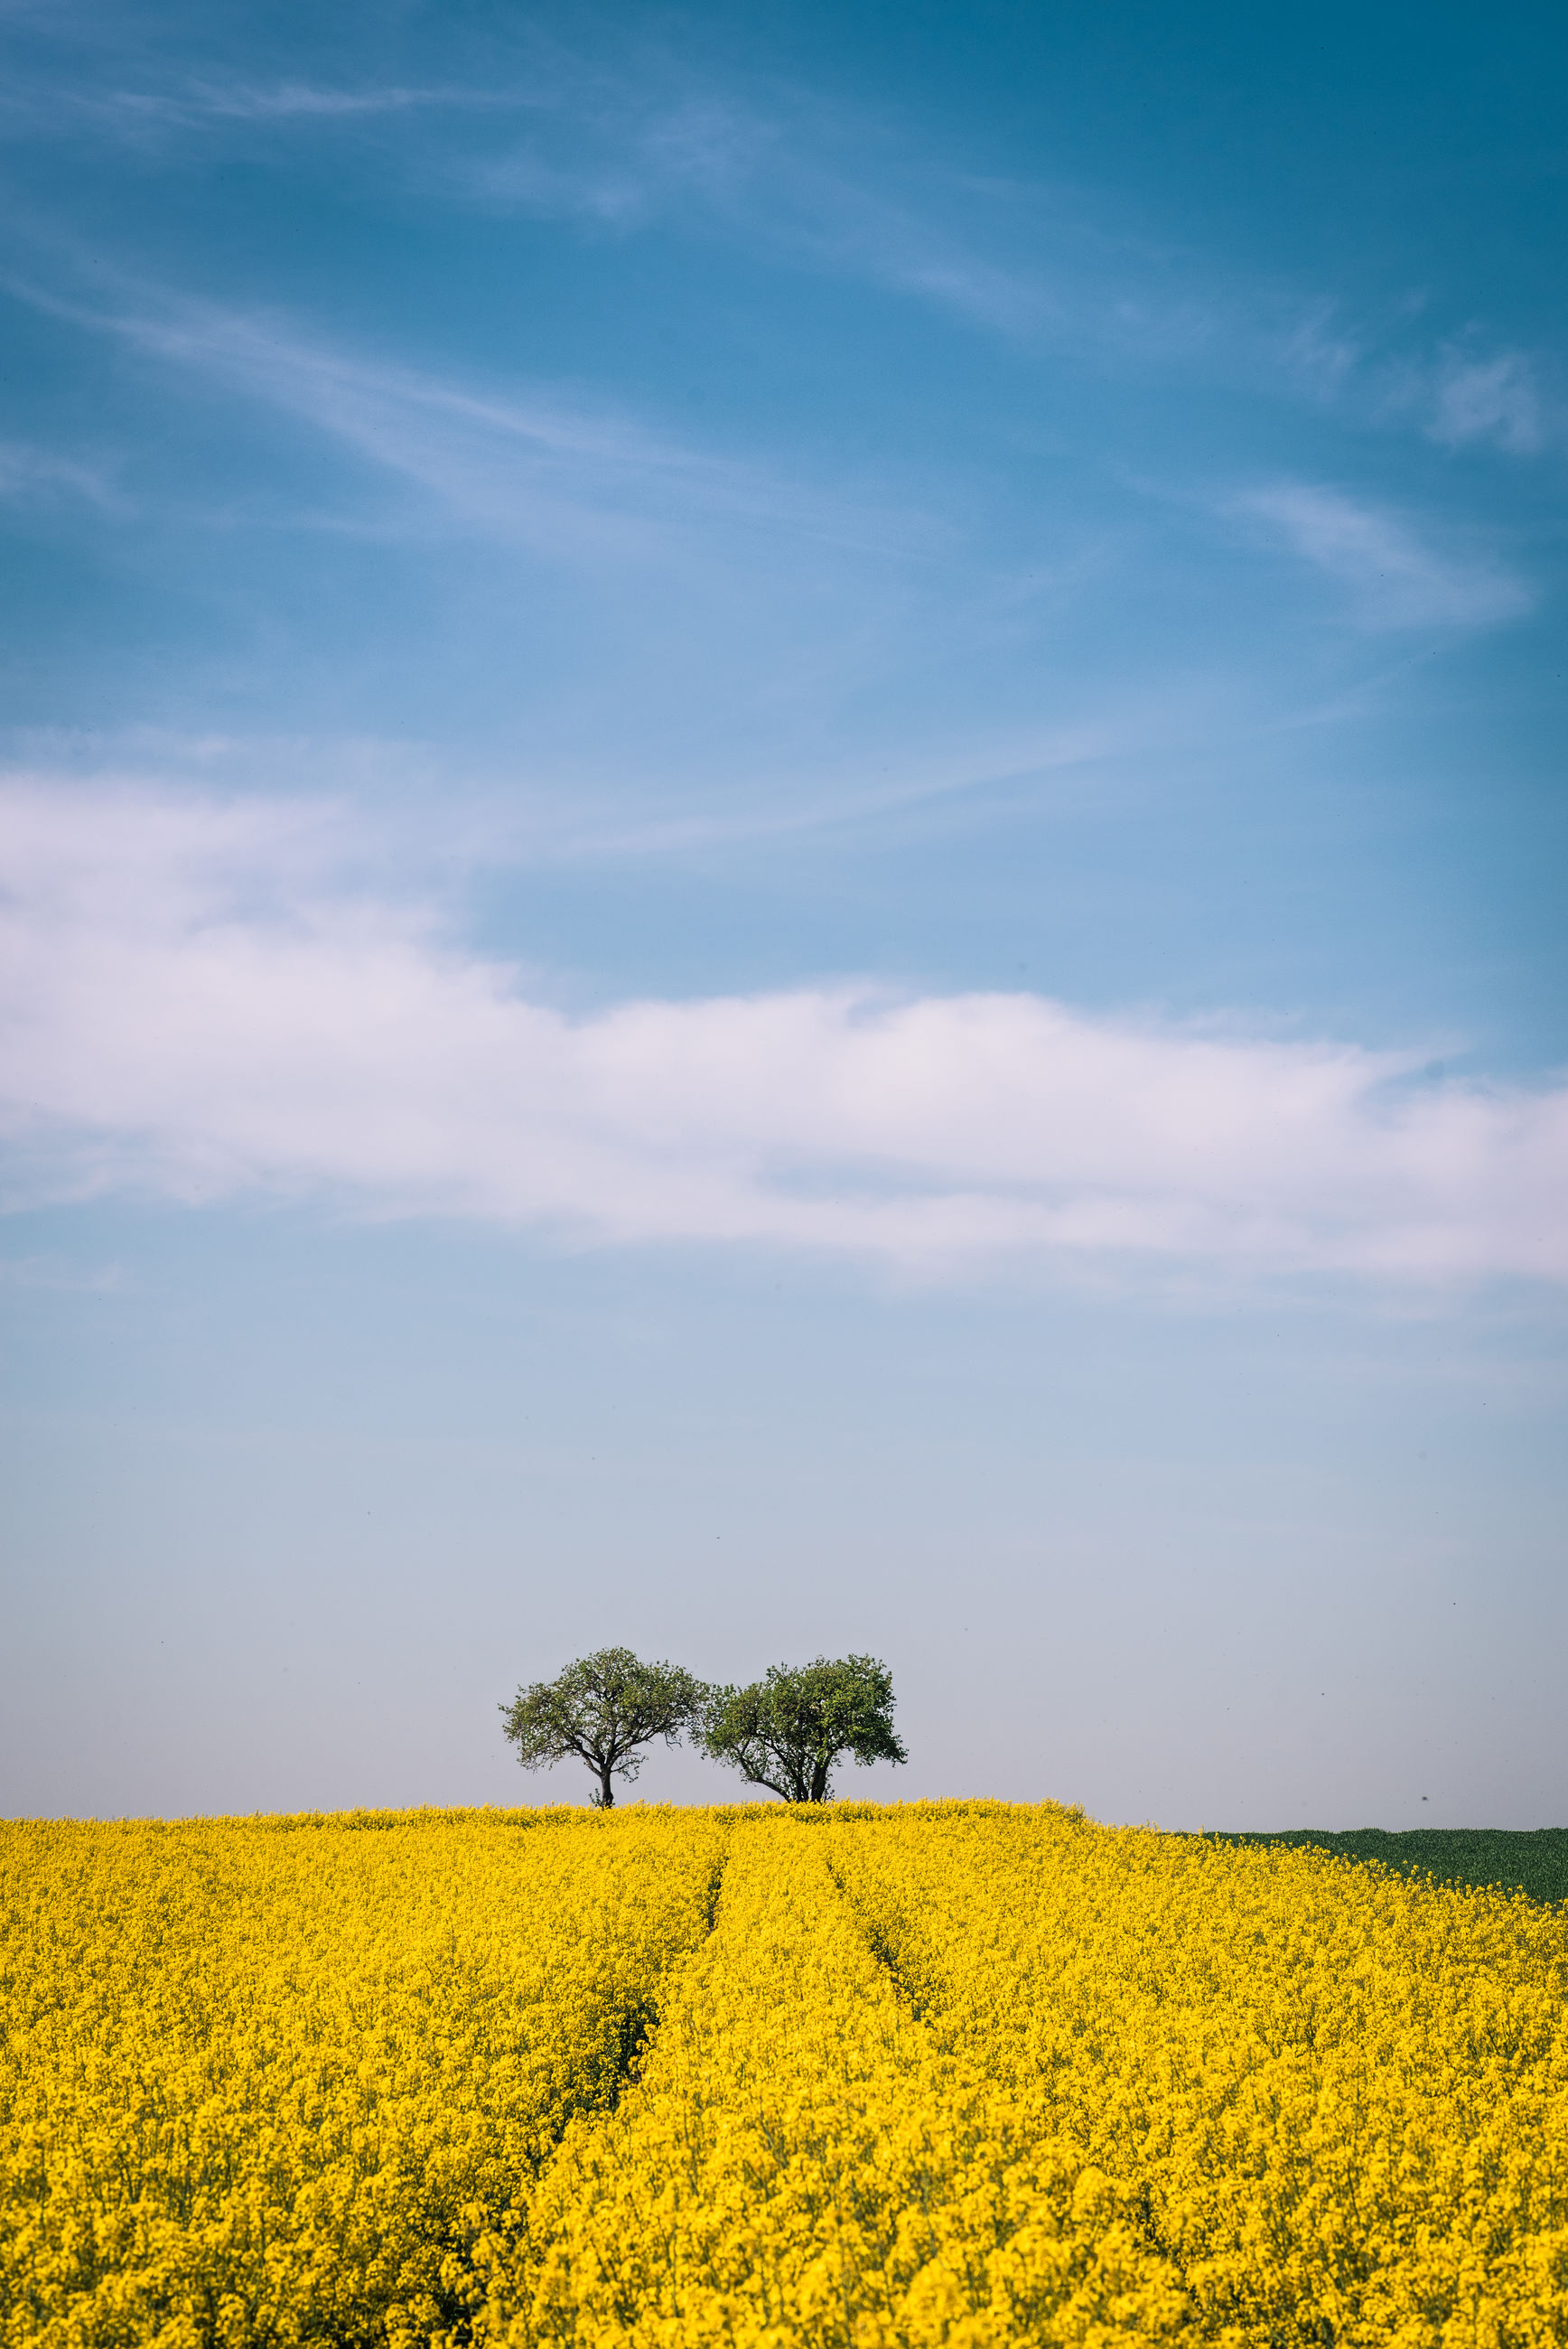 VIEW OF OILSEED RAPE FIELD AGAINST SKY